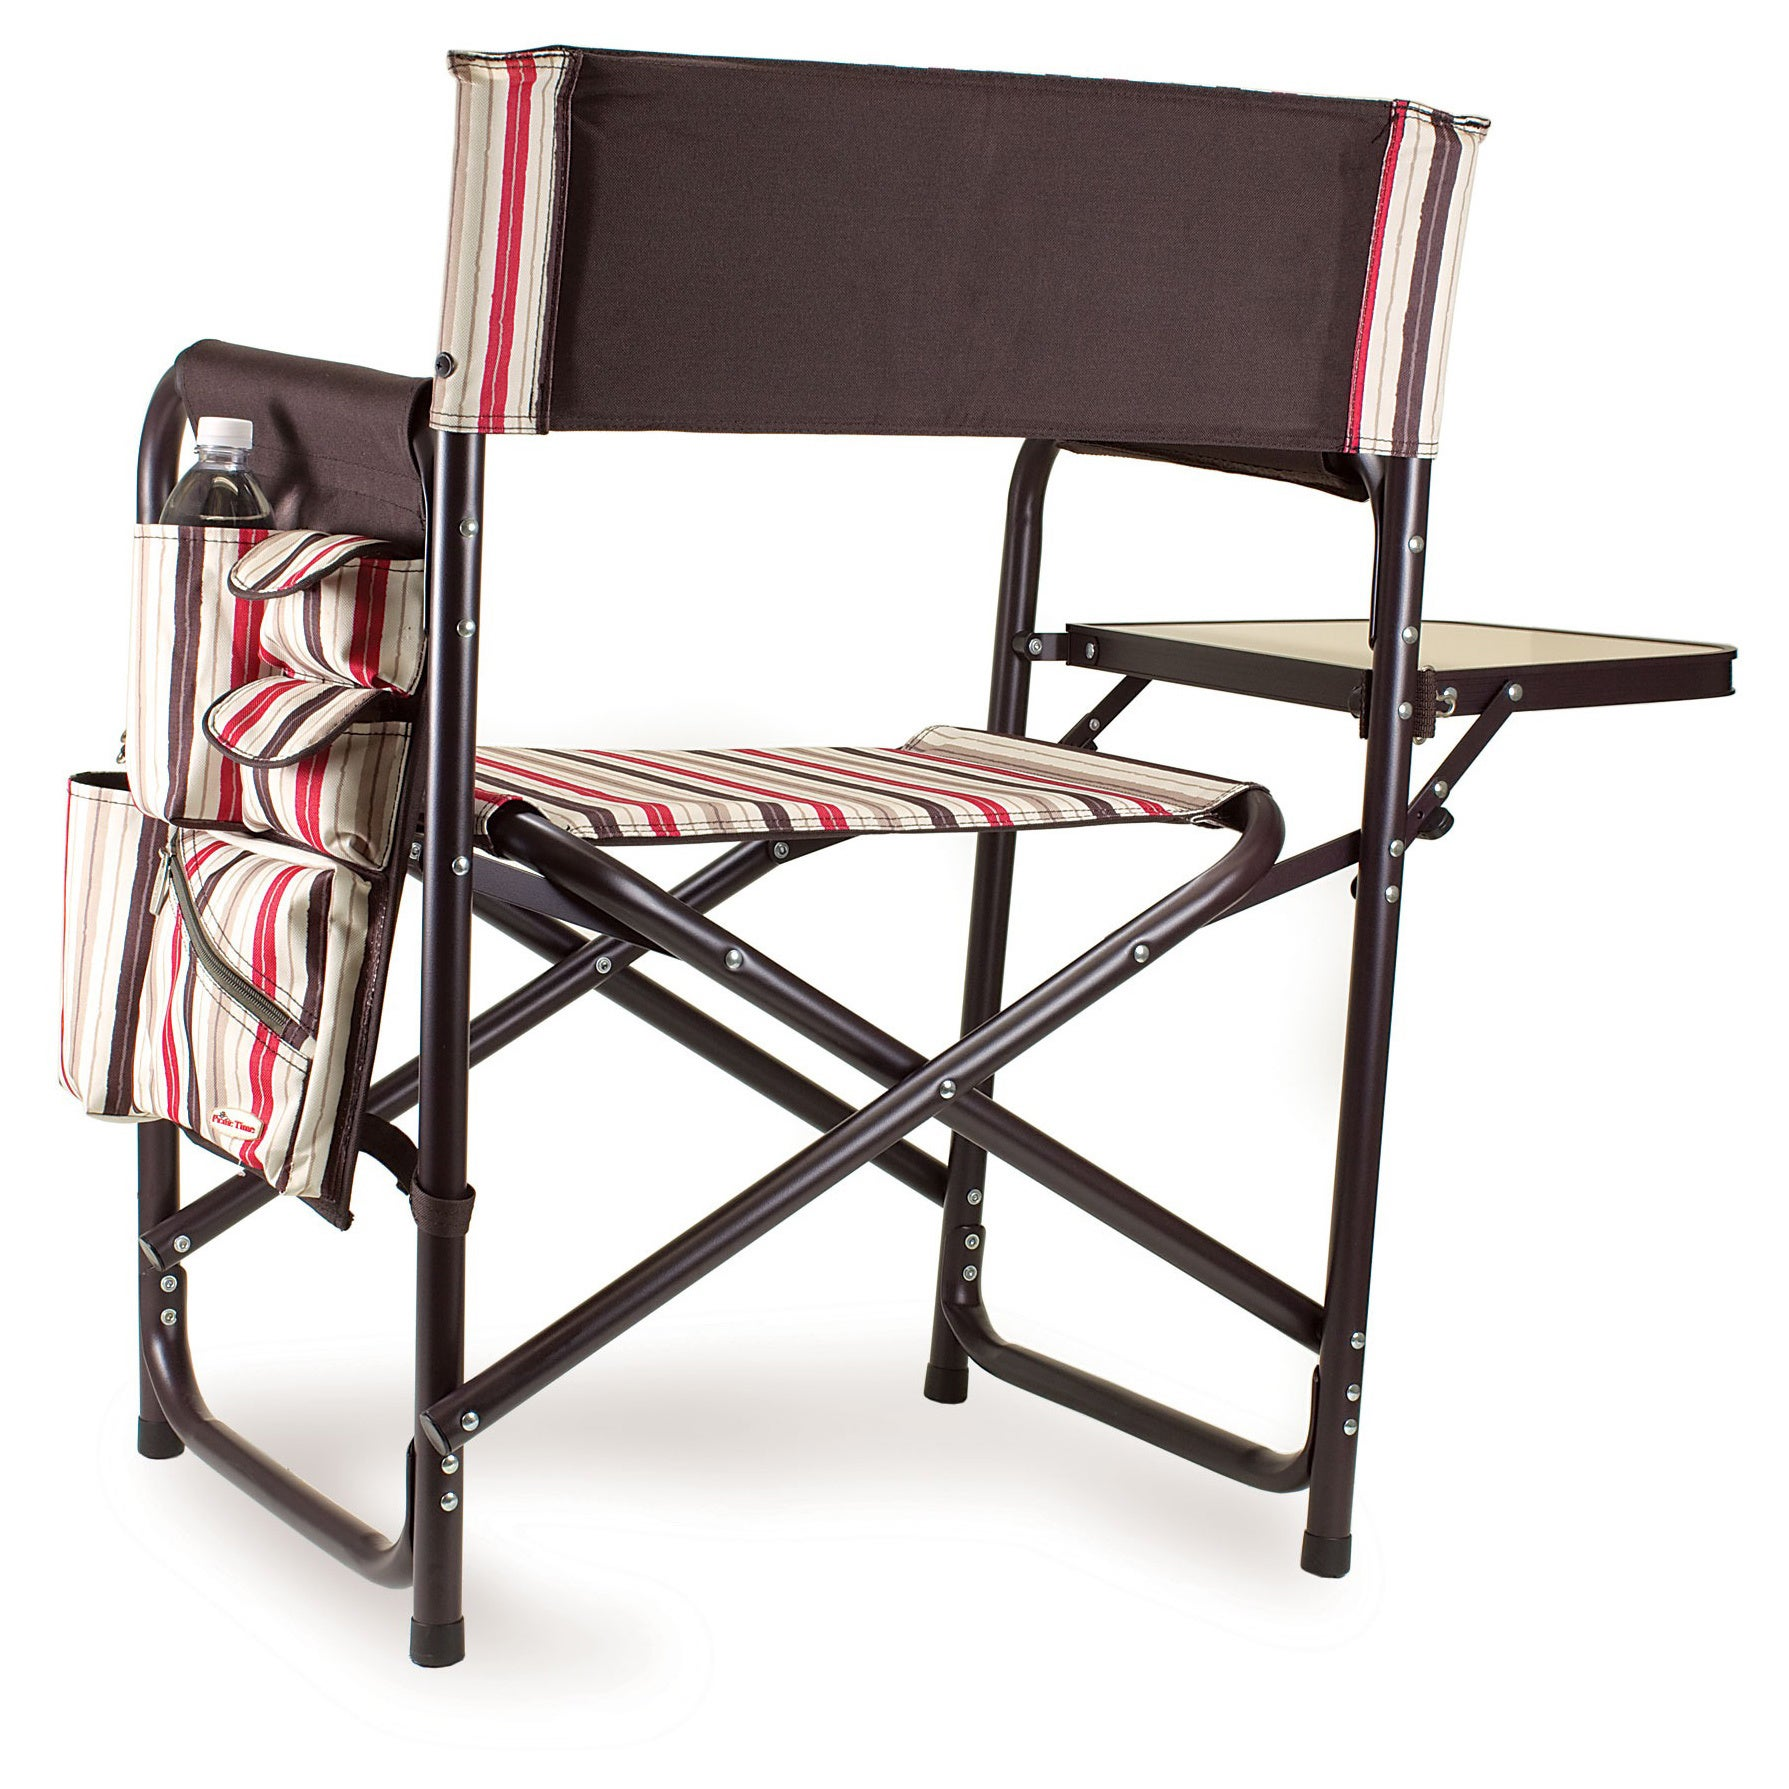 Shop Picnic Time Folding Sports Chair With Side Table   On Sale   Free  Shipping Today   Overstock.com   4870027